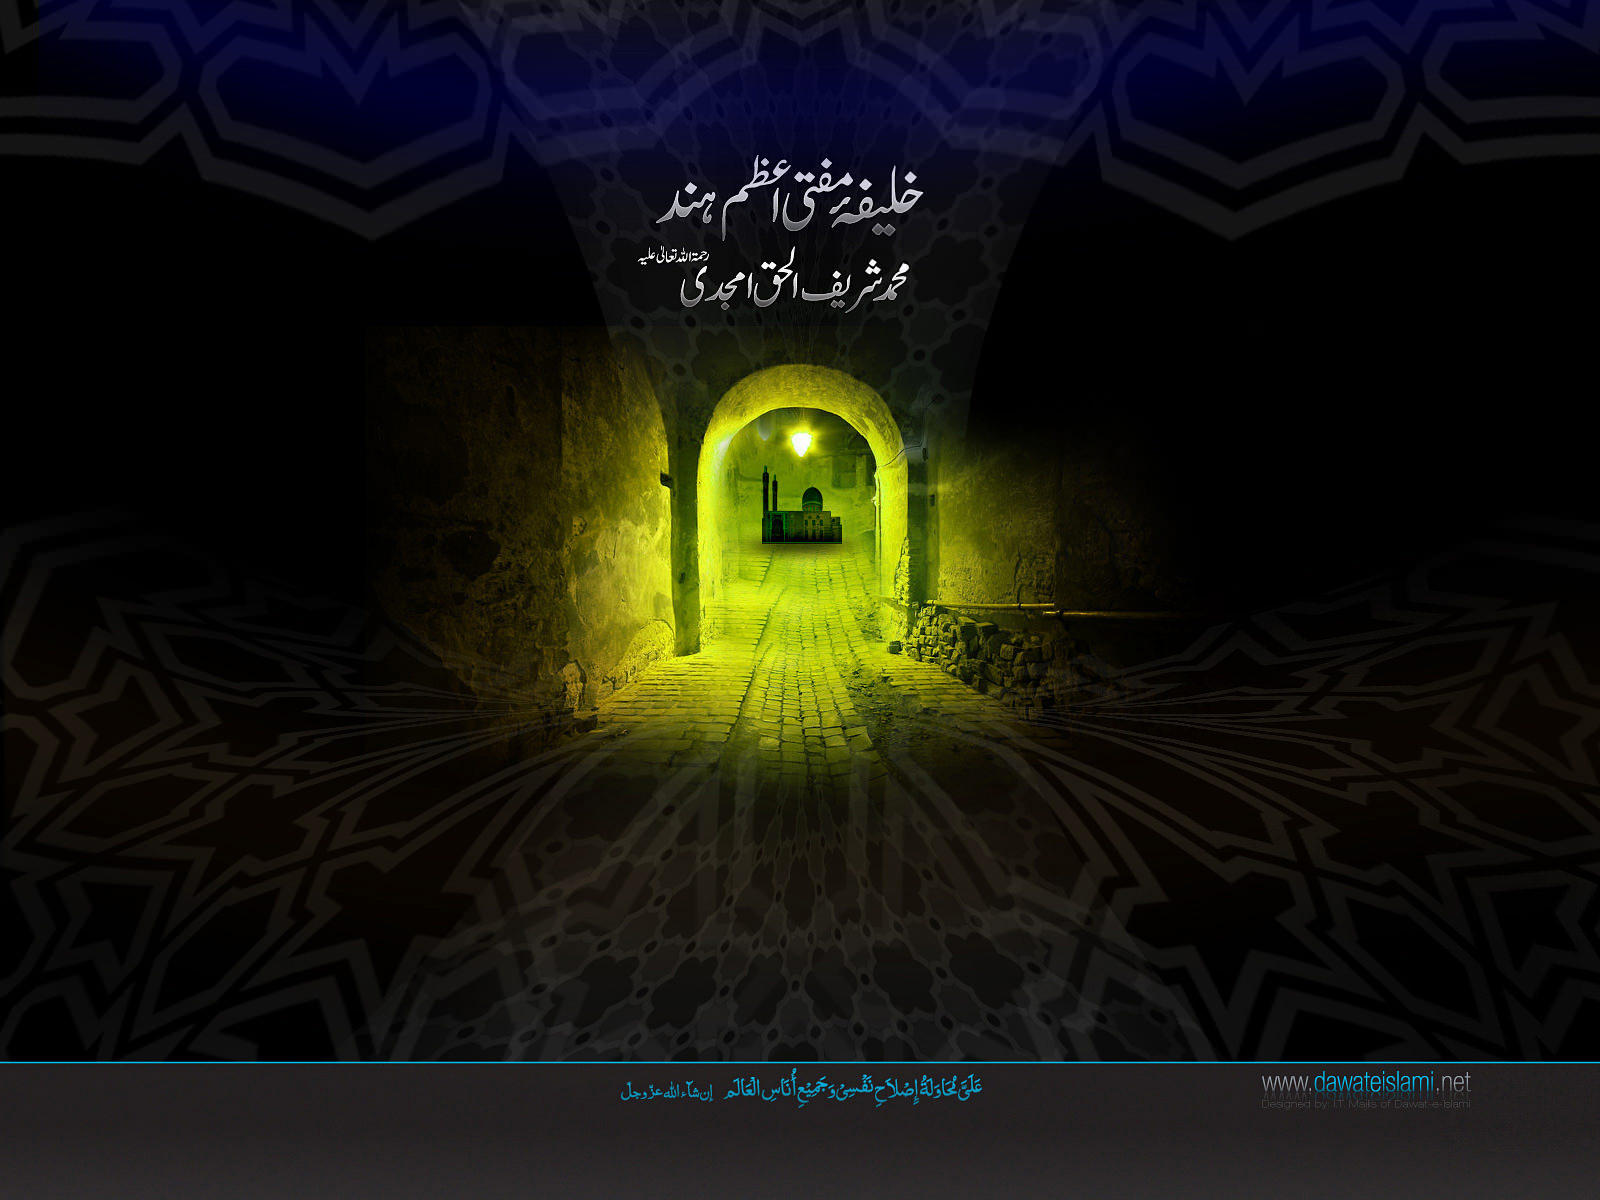 Wallpaper Sharif ul Haq Amjadi 01